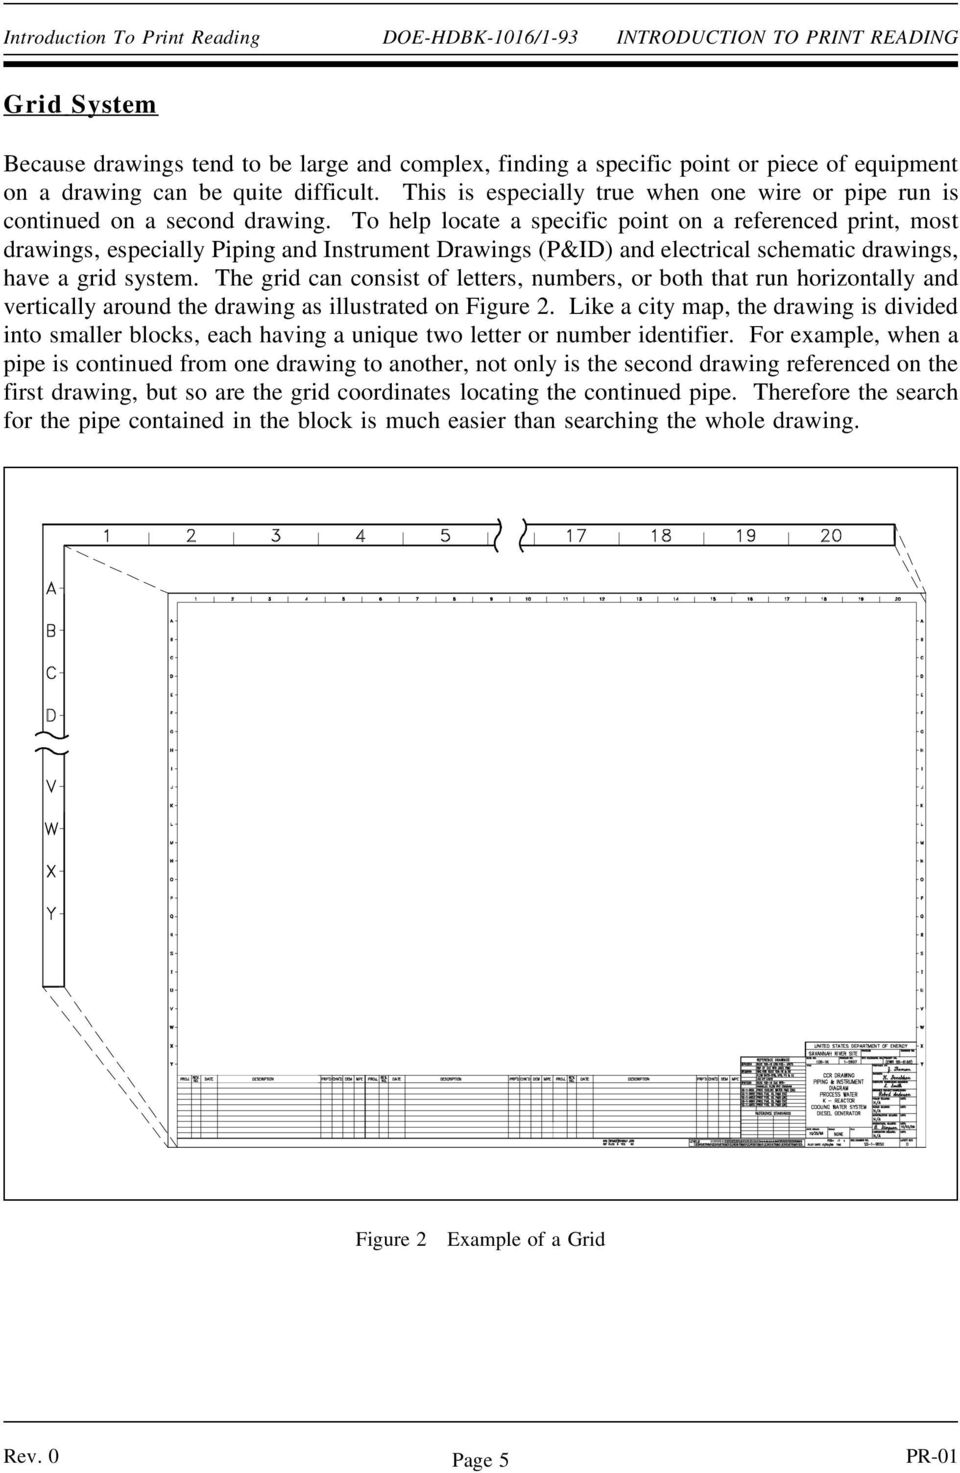 Engineering Drawings Mechanical Pdf Electrical Schematic Letters To Help Locate A Specific Point On Referenced Print Most Especially Piping